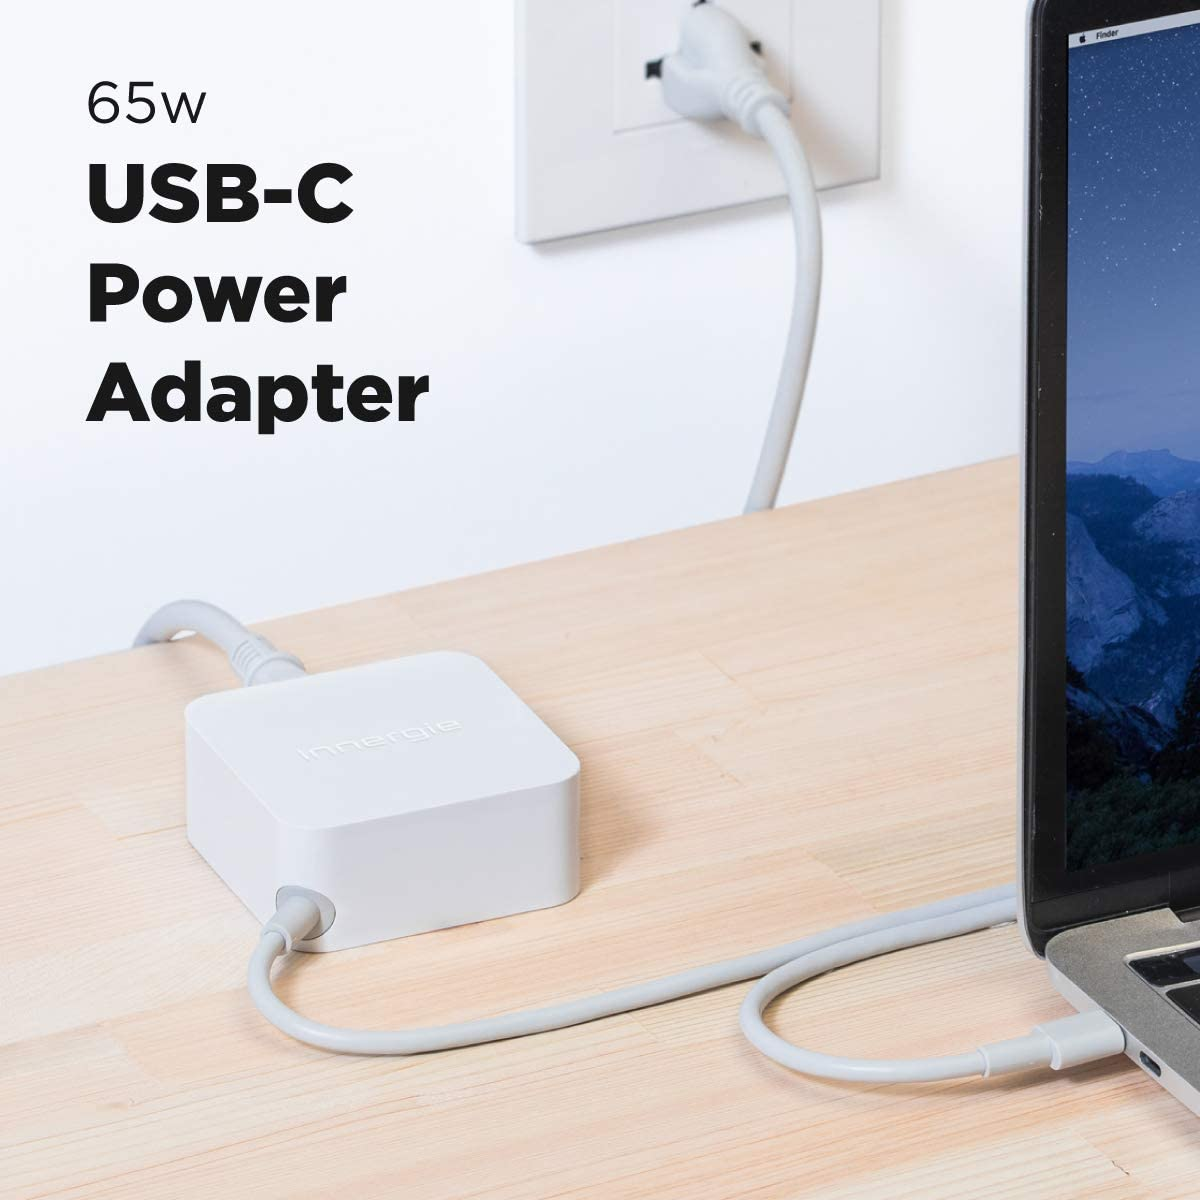 Innergie 65W USB C Laptop Charger - Universal Computer Power Adapter with Portable Cord- Compatible with HP Pavilion/Dell/Apple MacBook Pro/Google Chromebook/Lenovo/Acer/Switch - Built-in Type C Cable